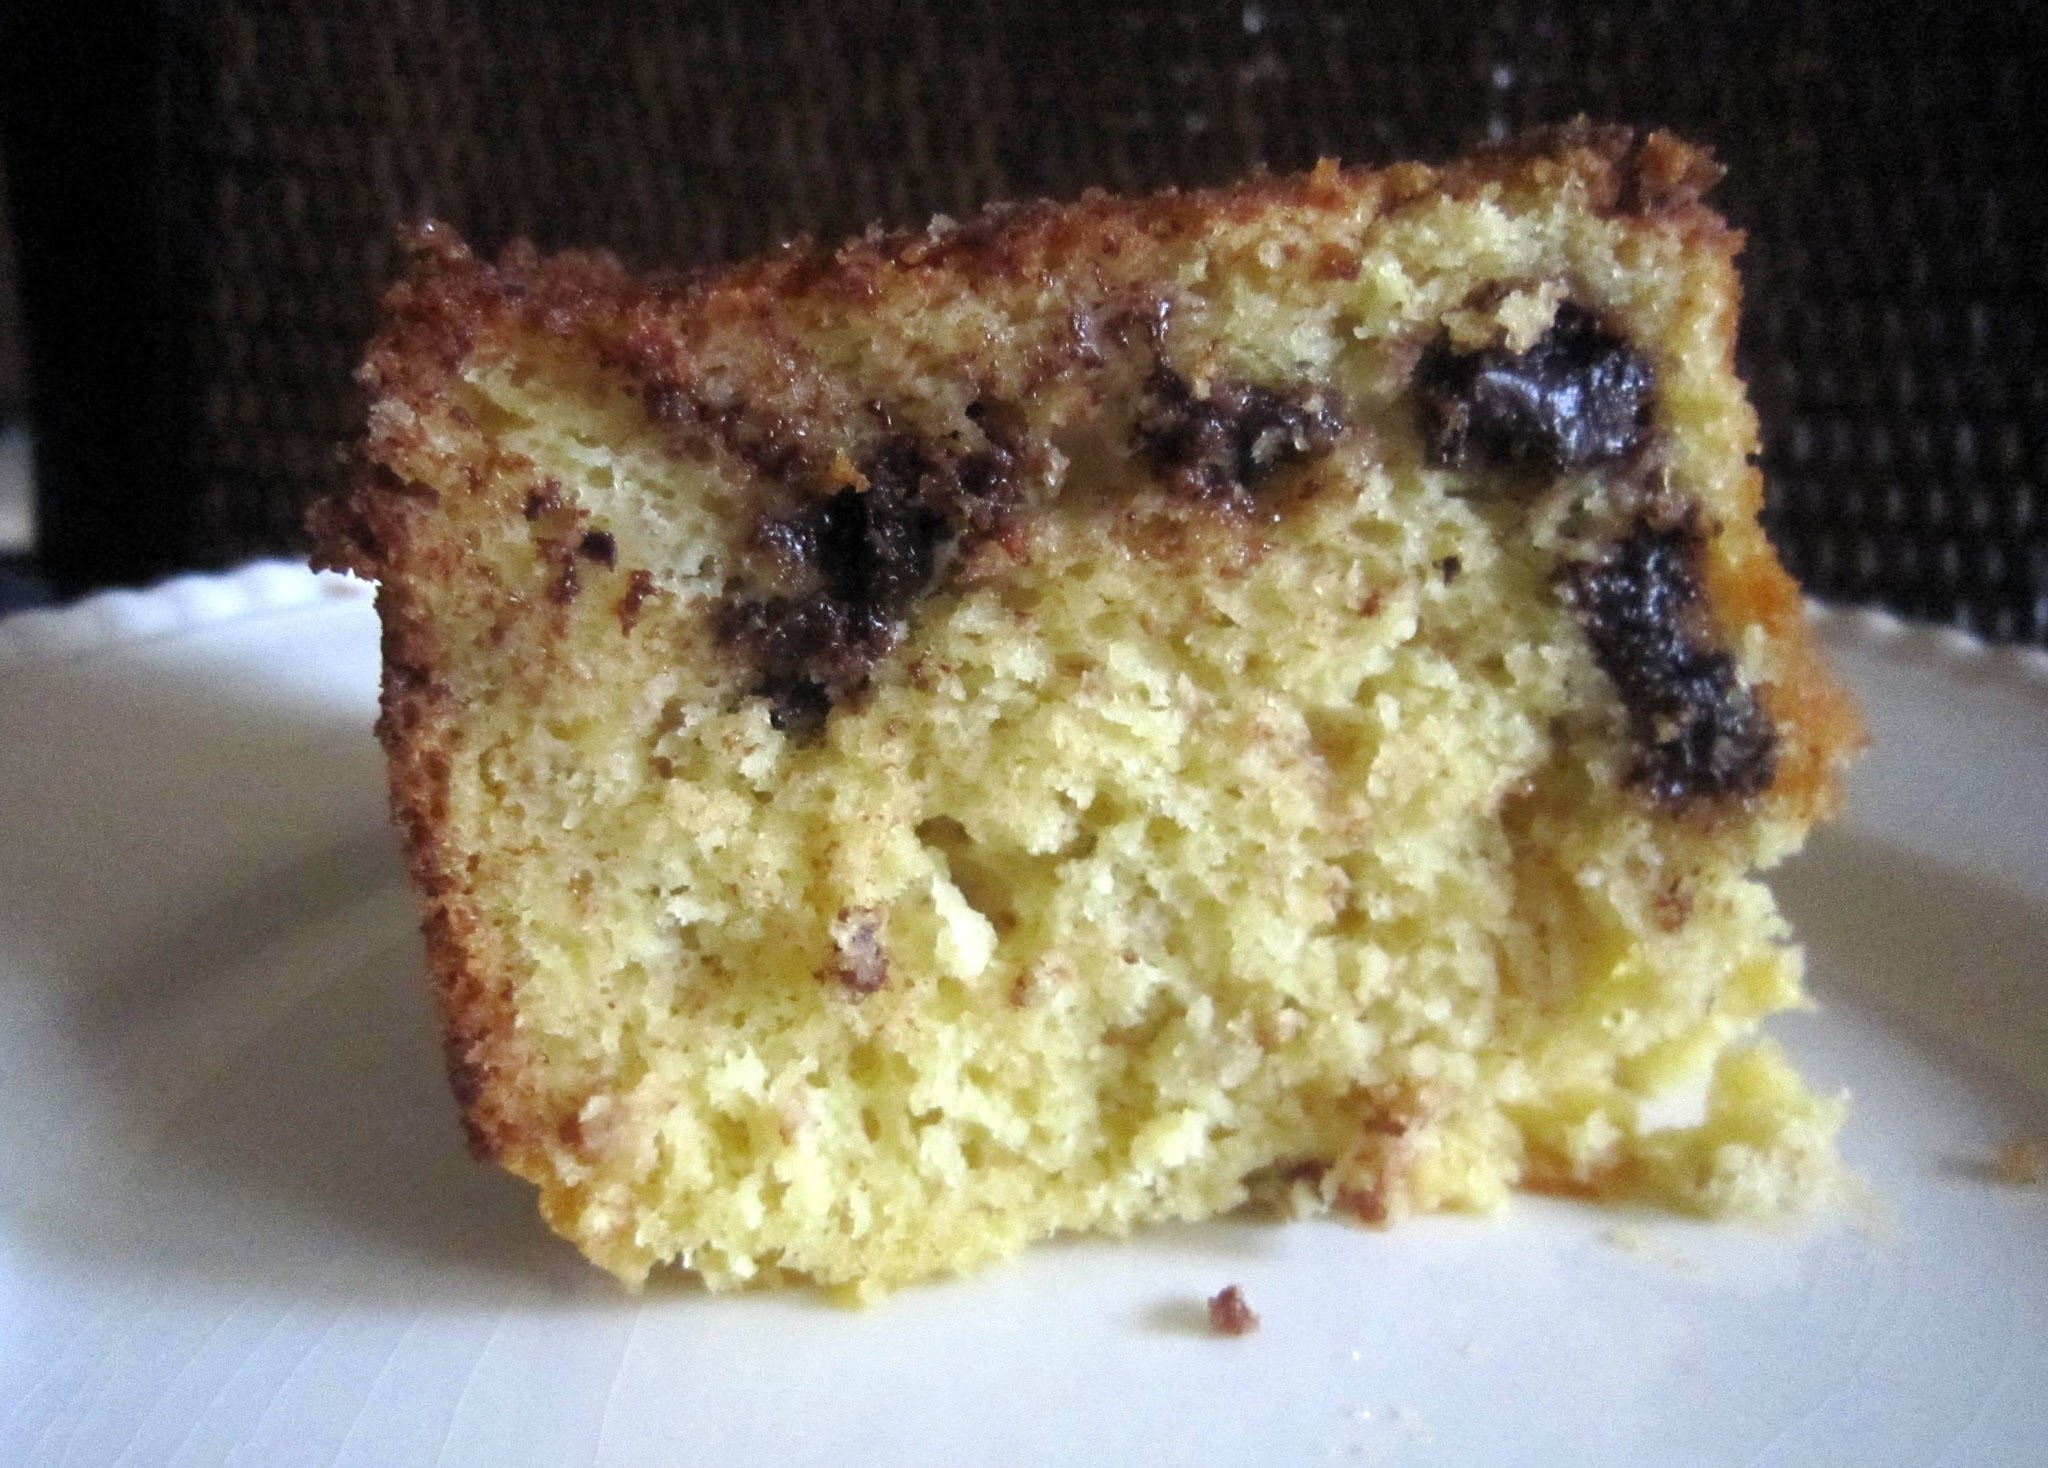 Delicious Lowfat Banana Chocolate Chip Cake Not From Scratch!